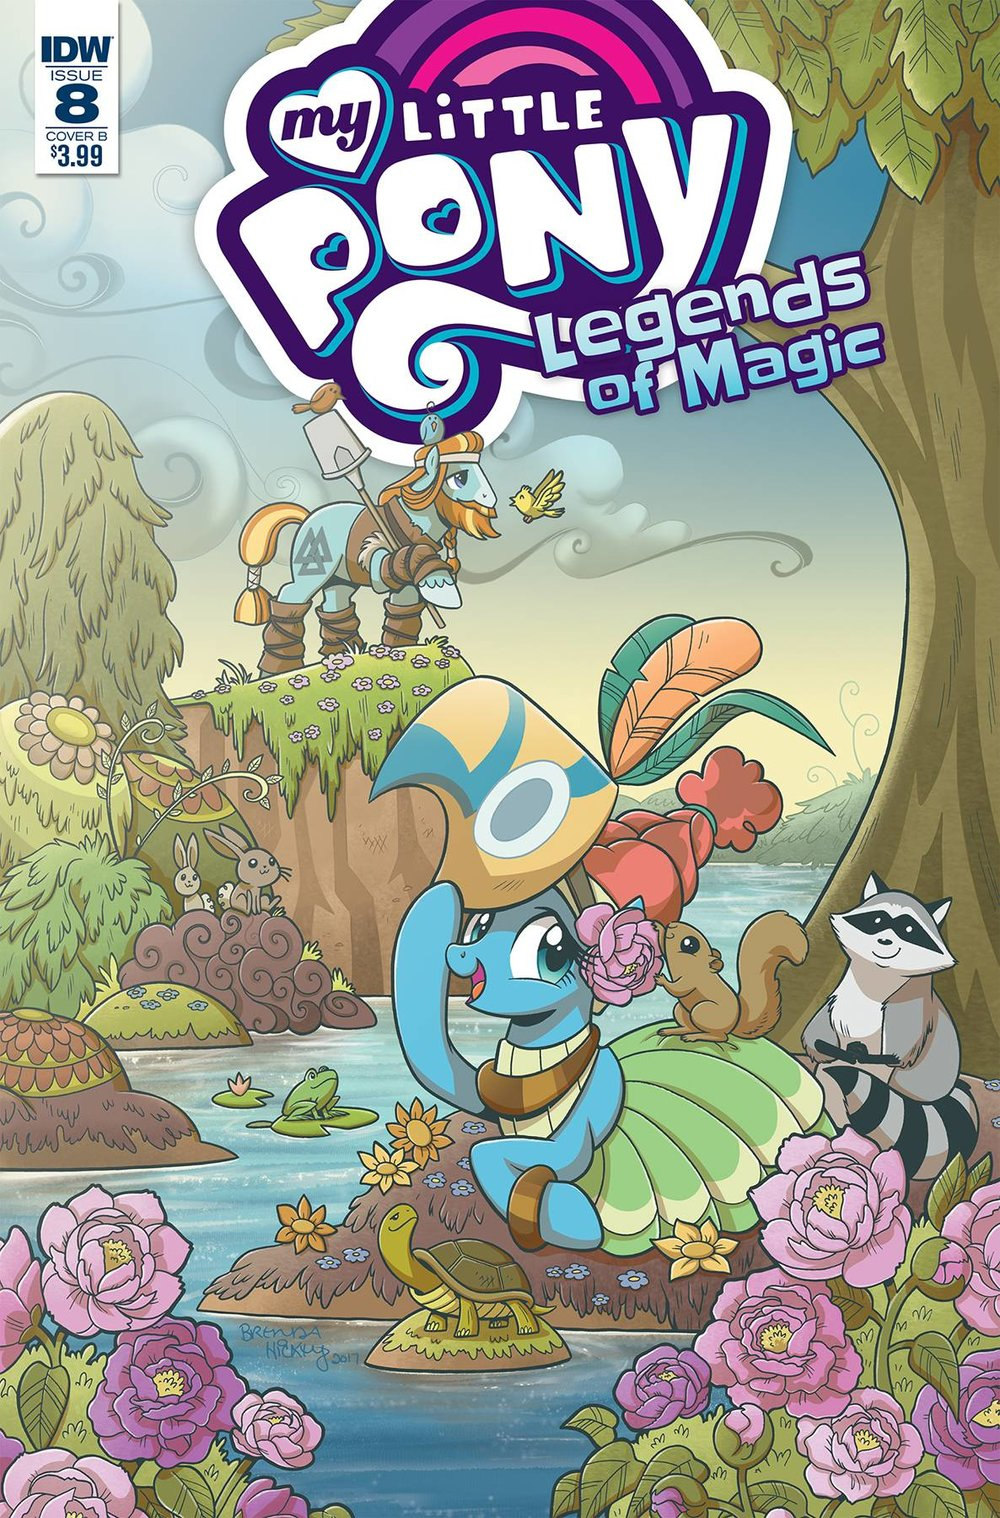 MY LITTLE PONY LEGENDS OF MAGIC 8 CVR B HICKEY.jpg